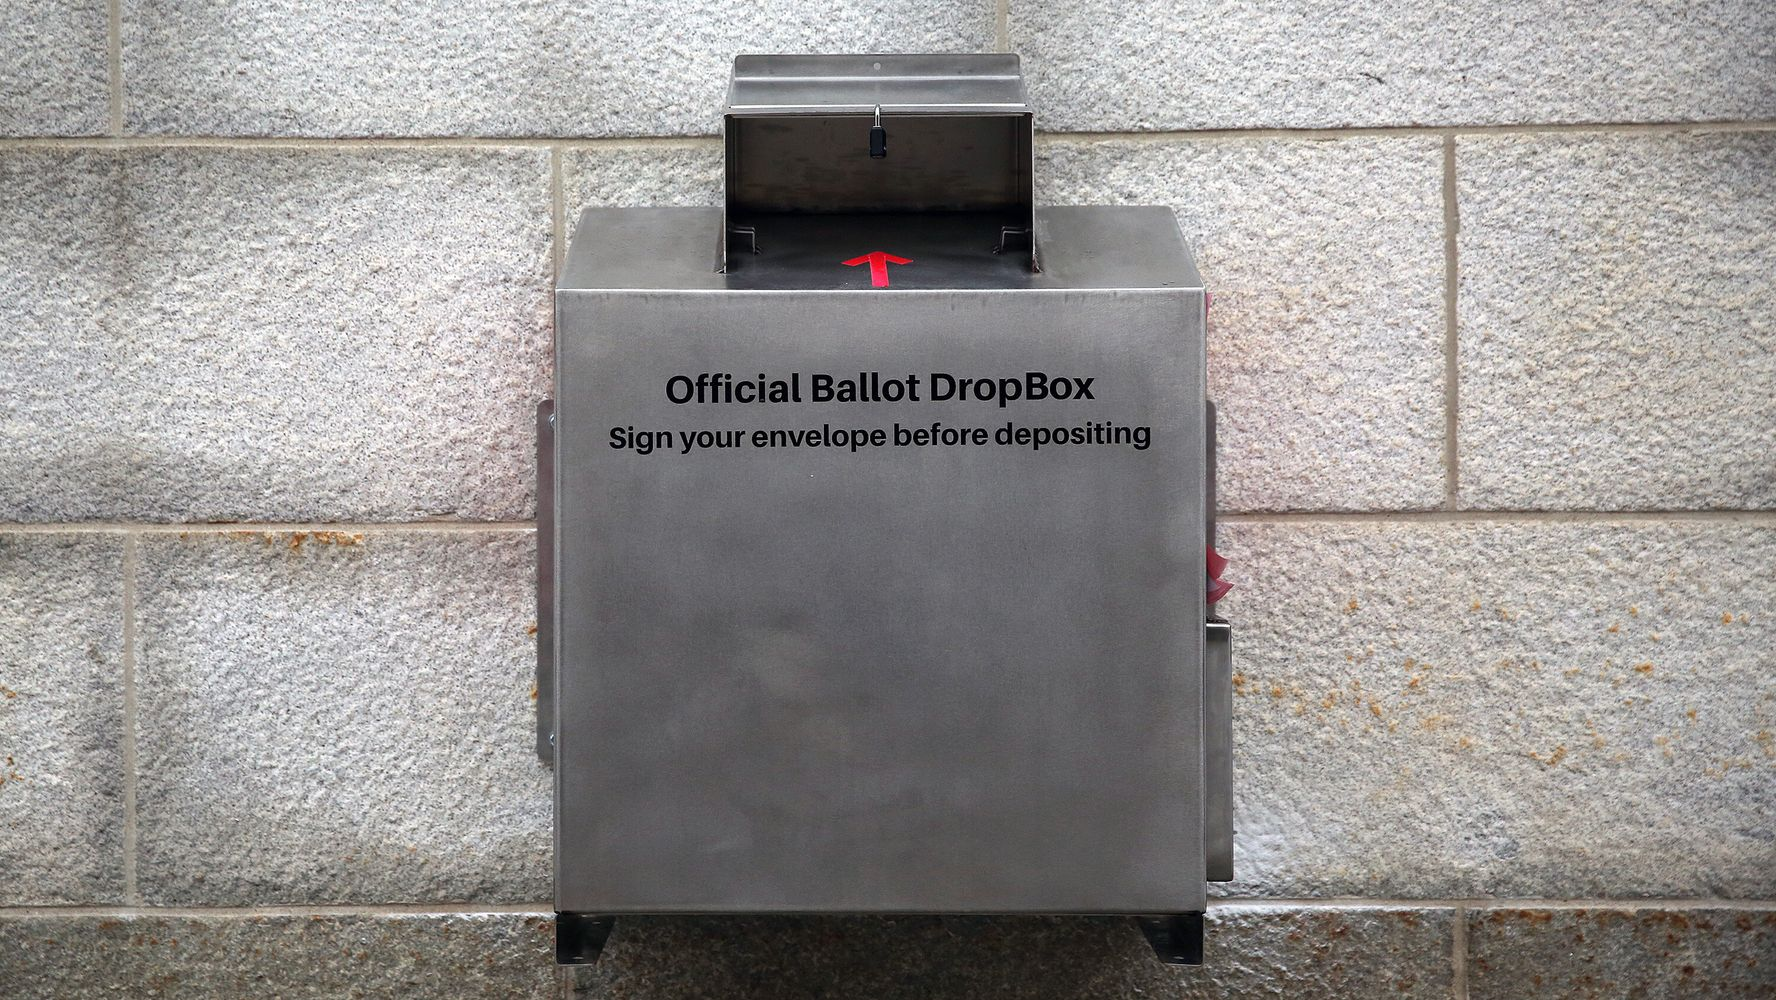 Massachusetts Asks FBI To Investigate Fire Set Inside Ballot Drop Box